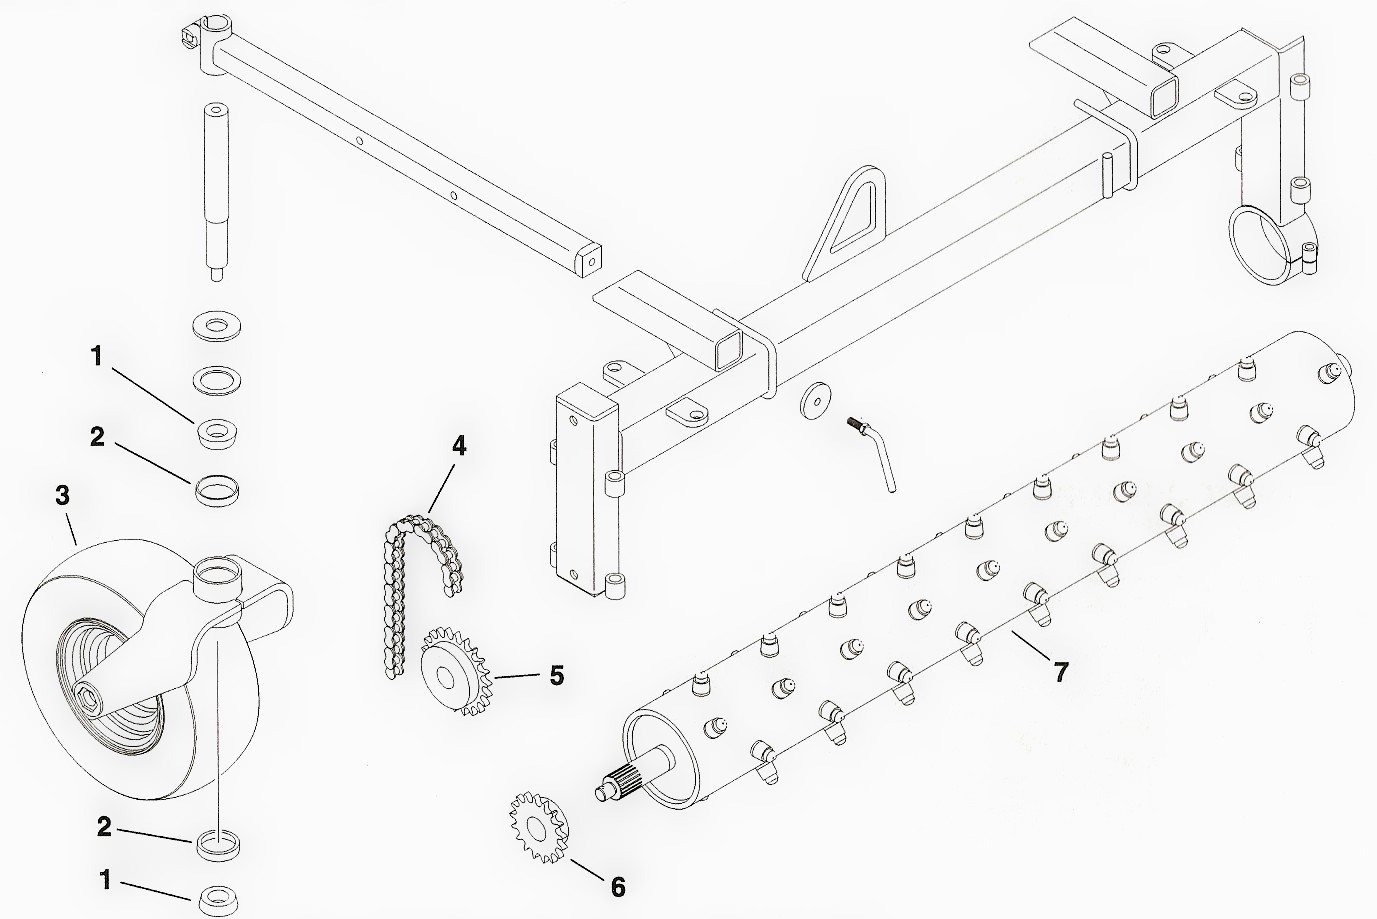 toro dingo harley rake attachment parts diagram